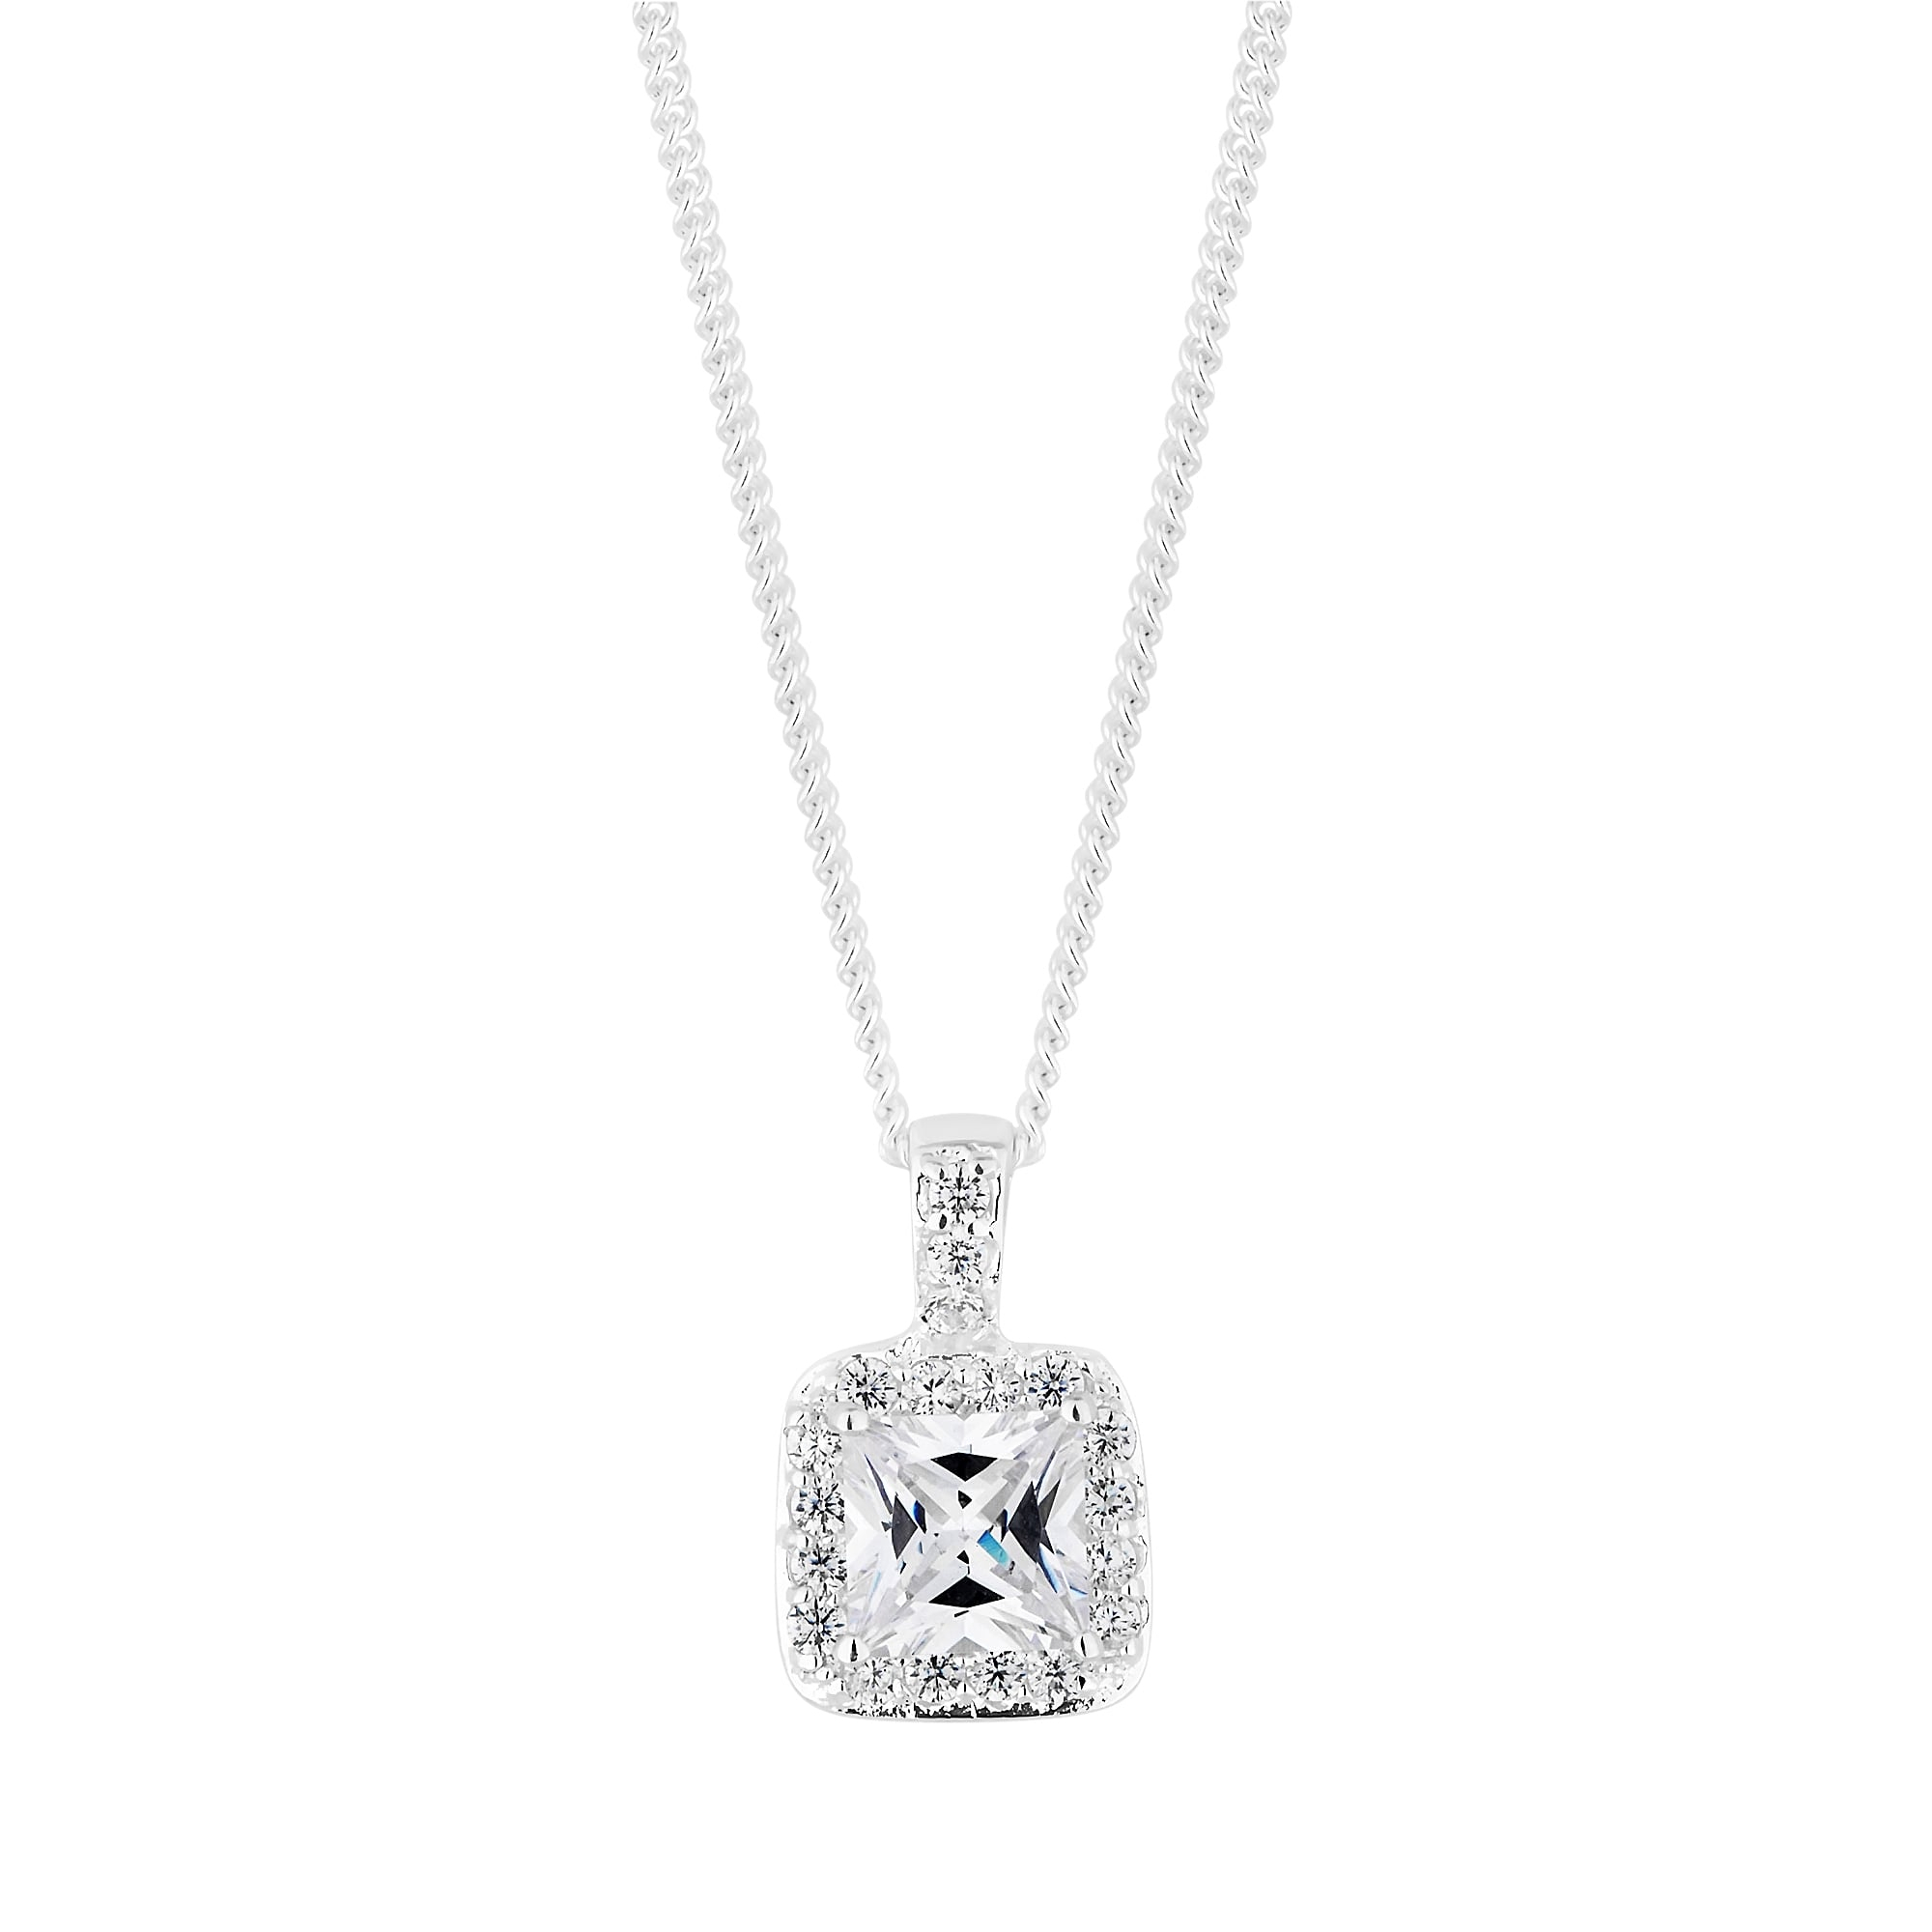 Sterling Silver 925 Cubic Zirconia Square Shaped Halo Pendant Necklace Pertaining To Current Sparkling Square Halo Pendant Necklaces (Gallery 1 of 25)